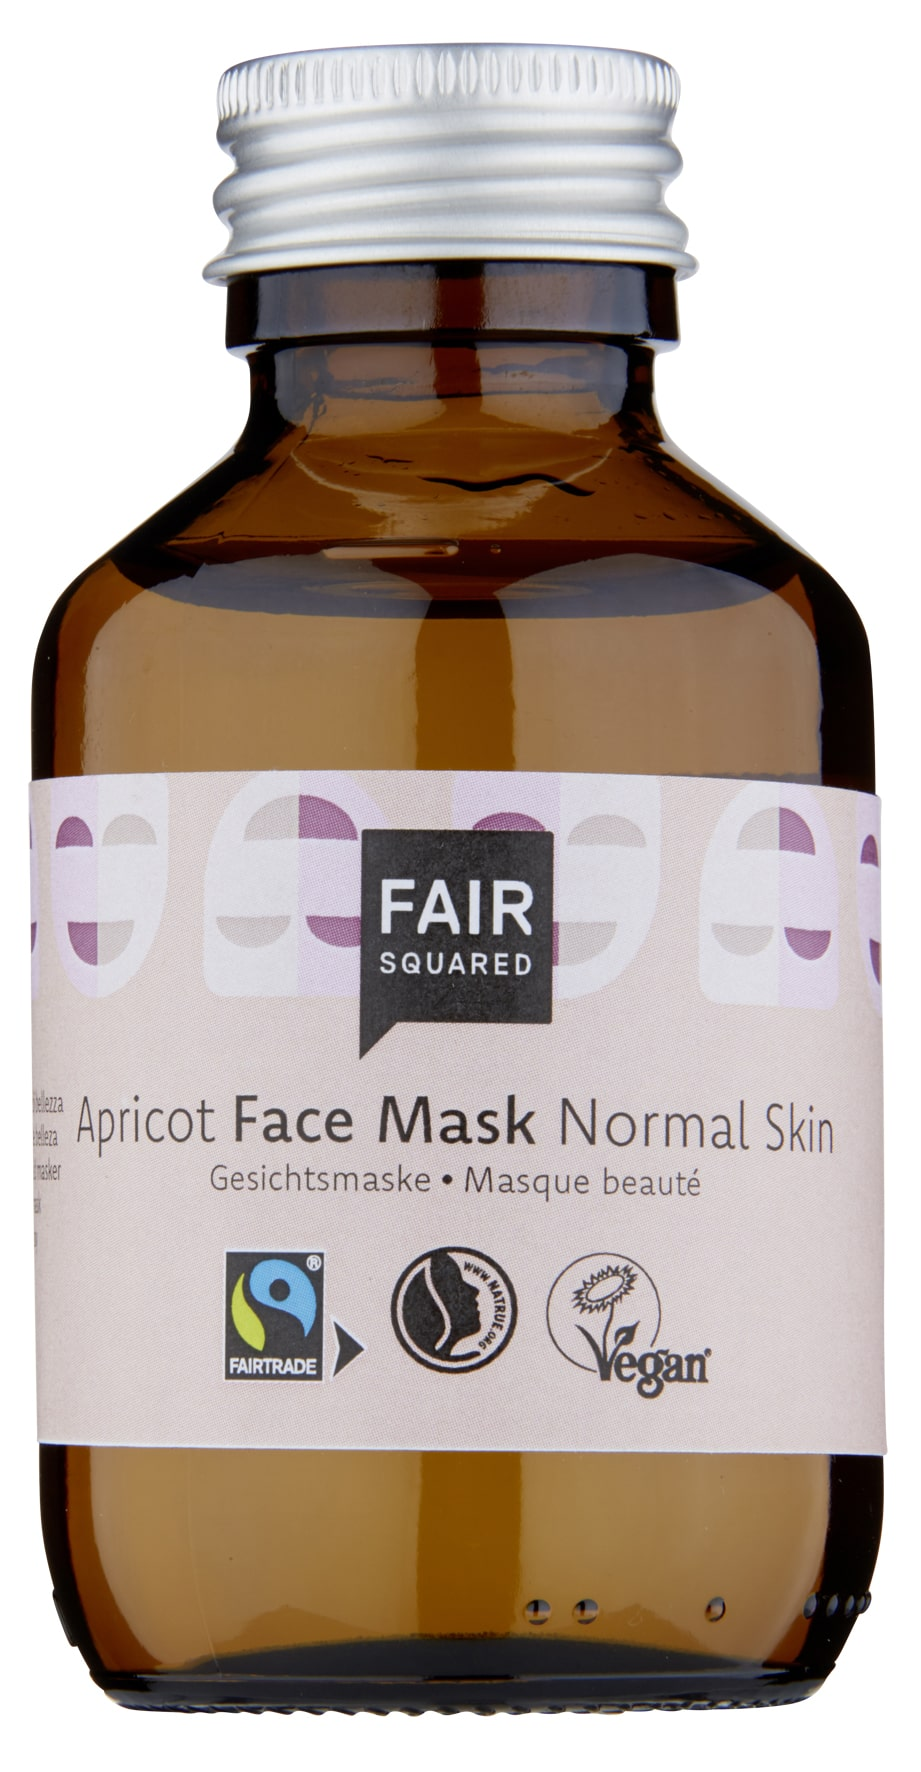 Apricot Facial Mask Normal Skin